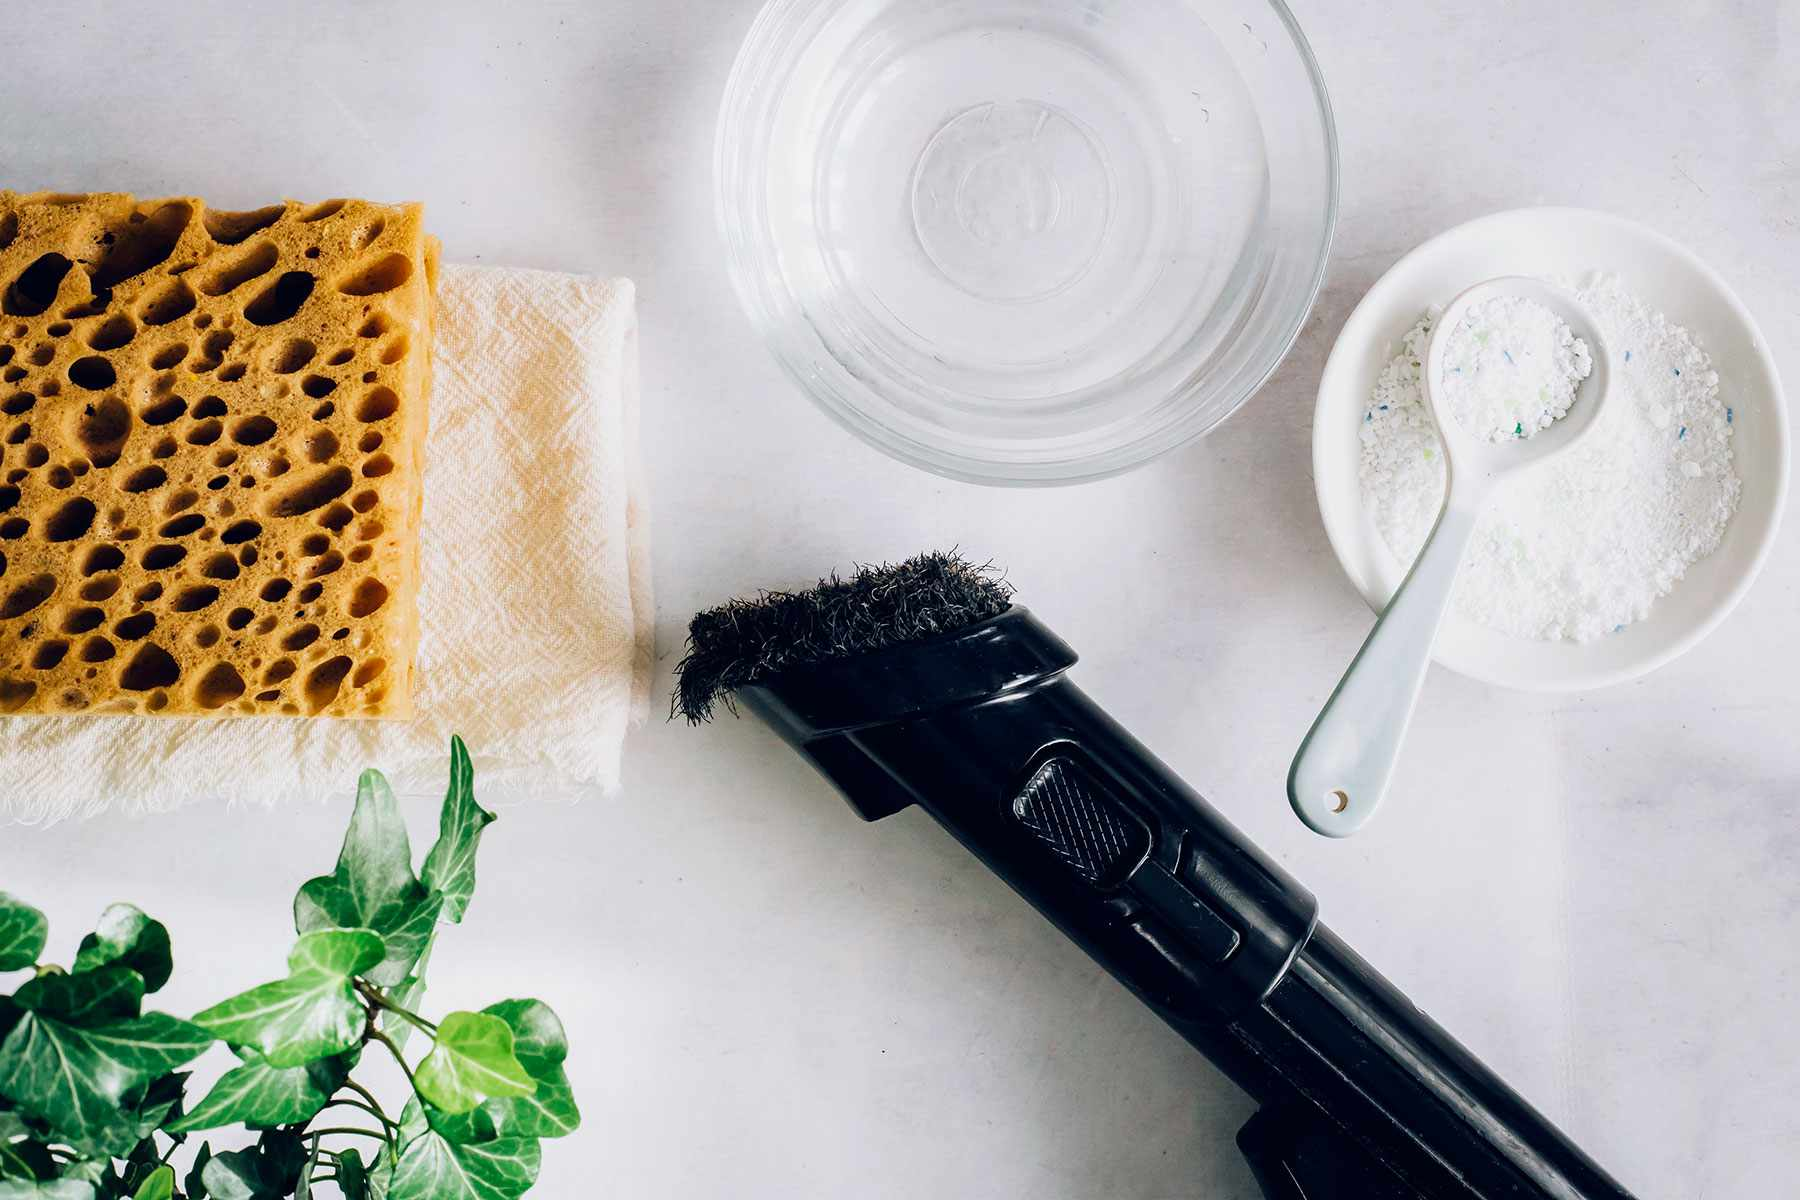 tools for removing pollen from fabric